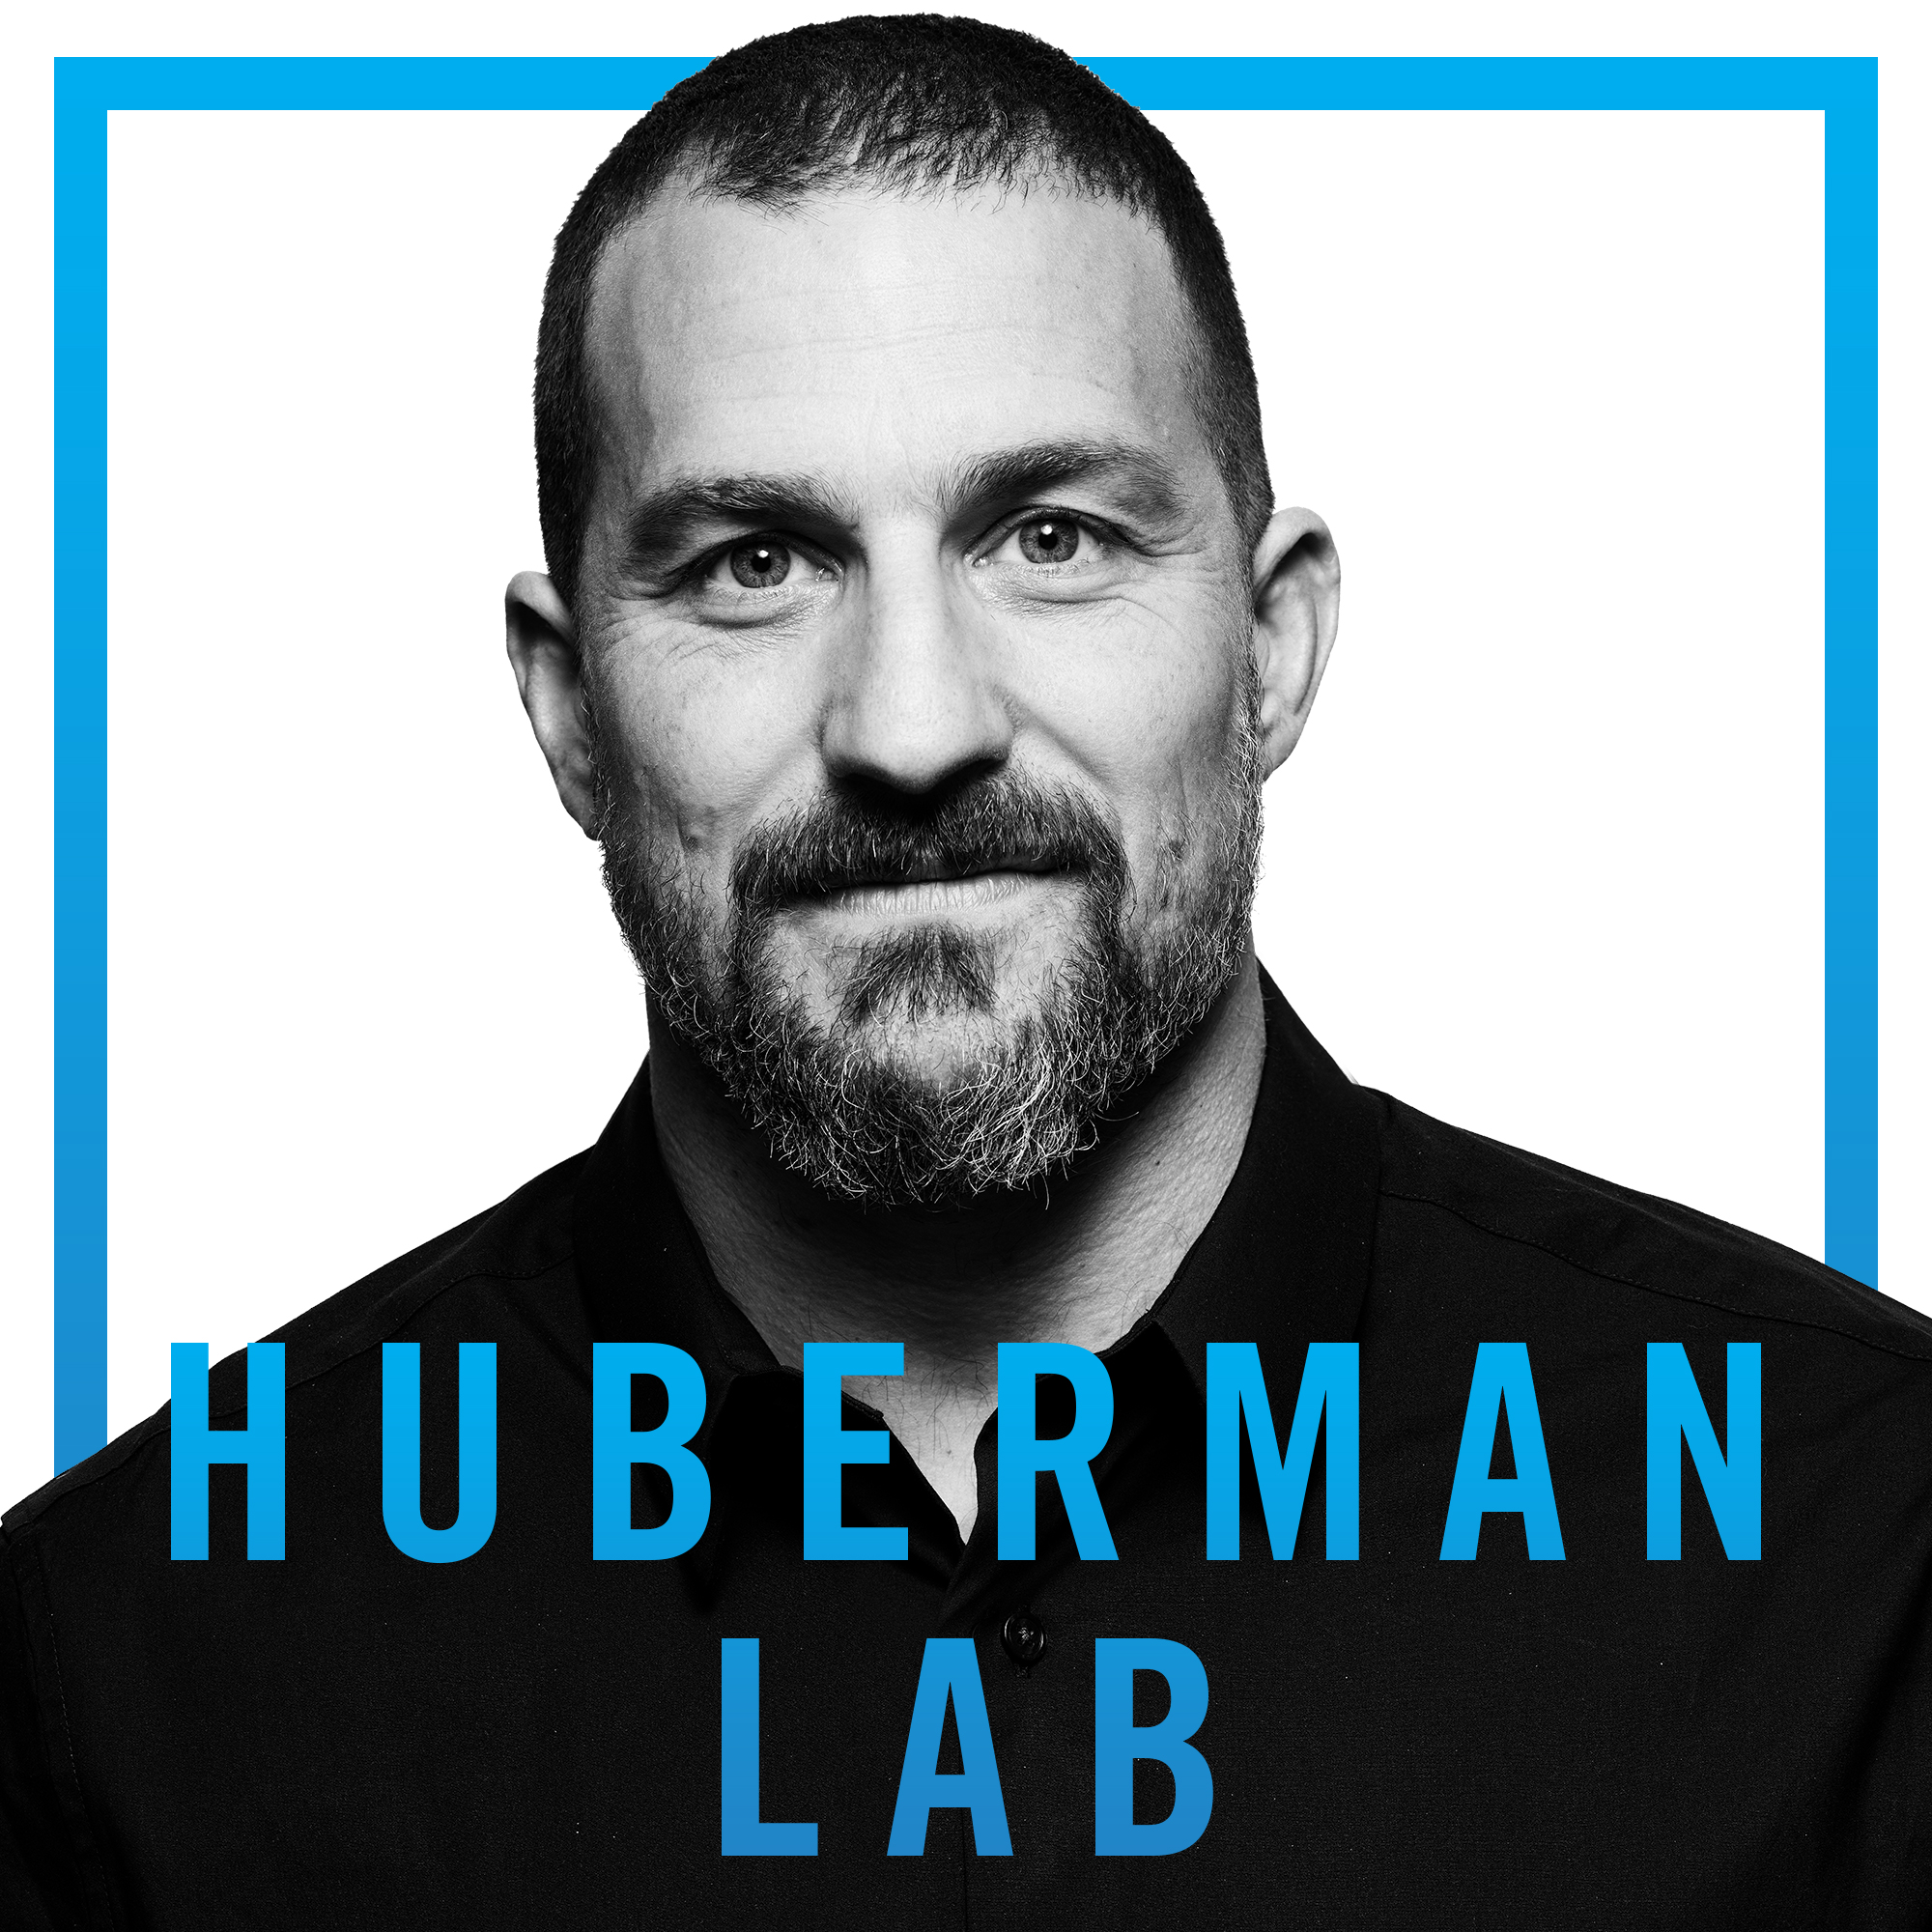 Welcome to the Huberman Lab Podcast